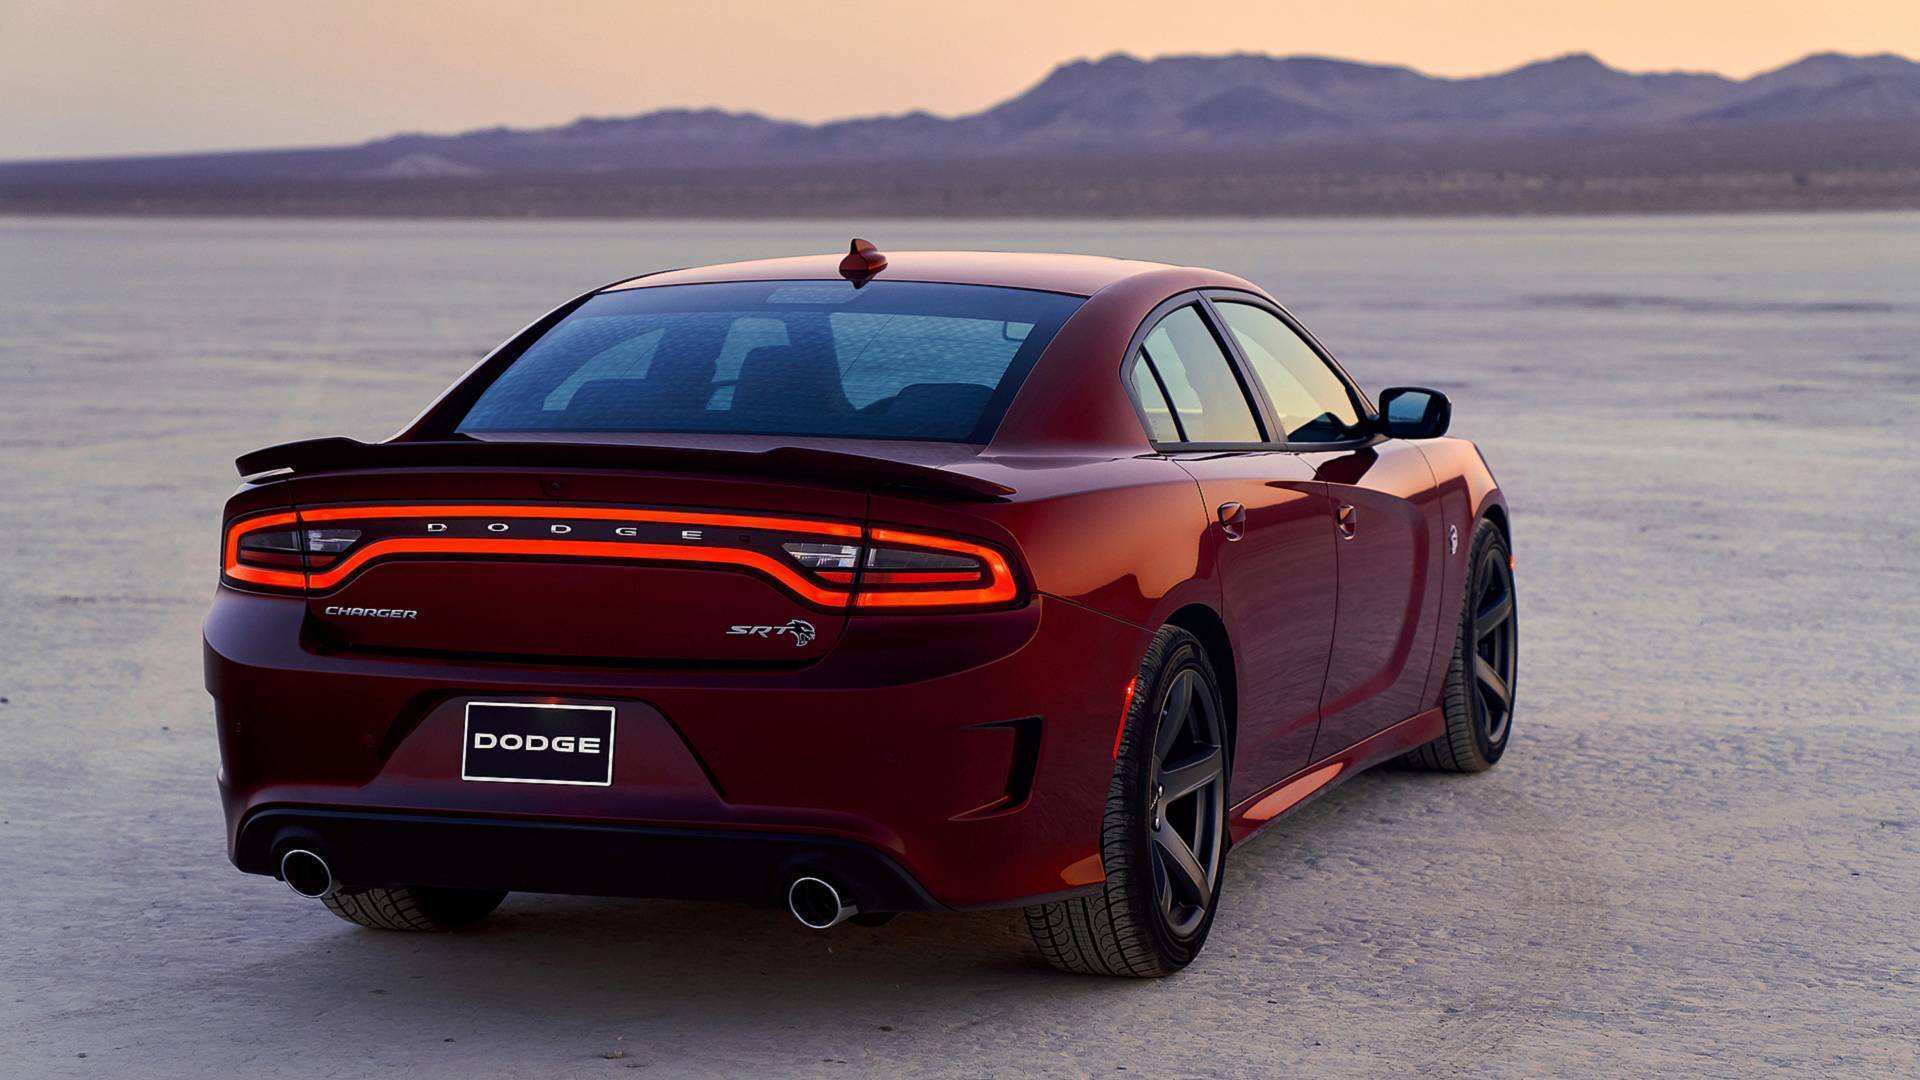 49 Great 2019 Dodge Challenger Hellcat Reviews with 2019 Dodge Challenger Hellcat